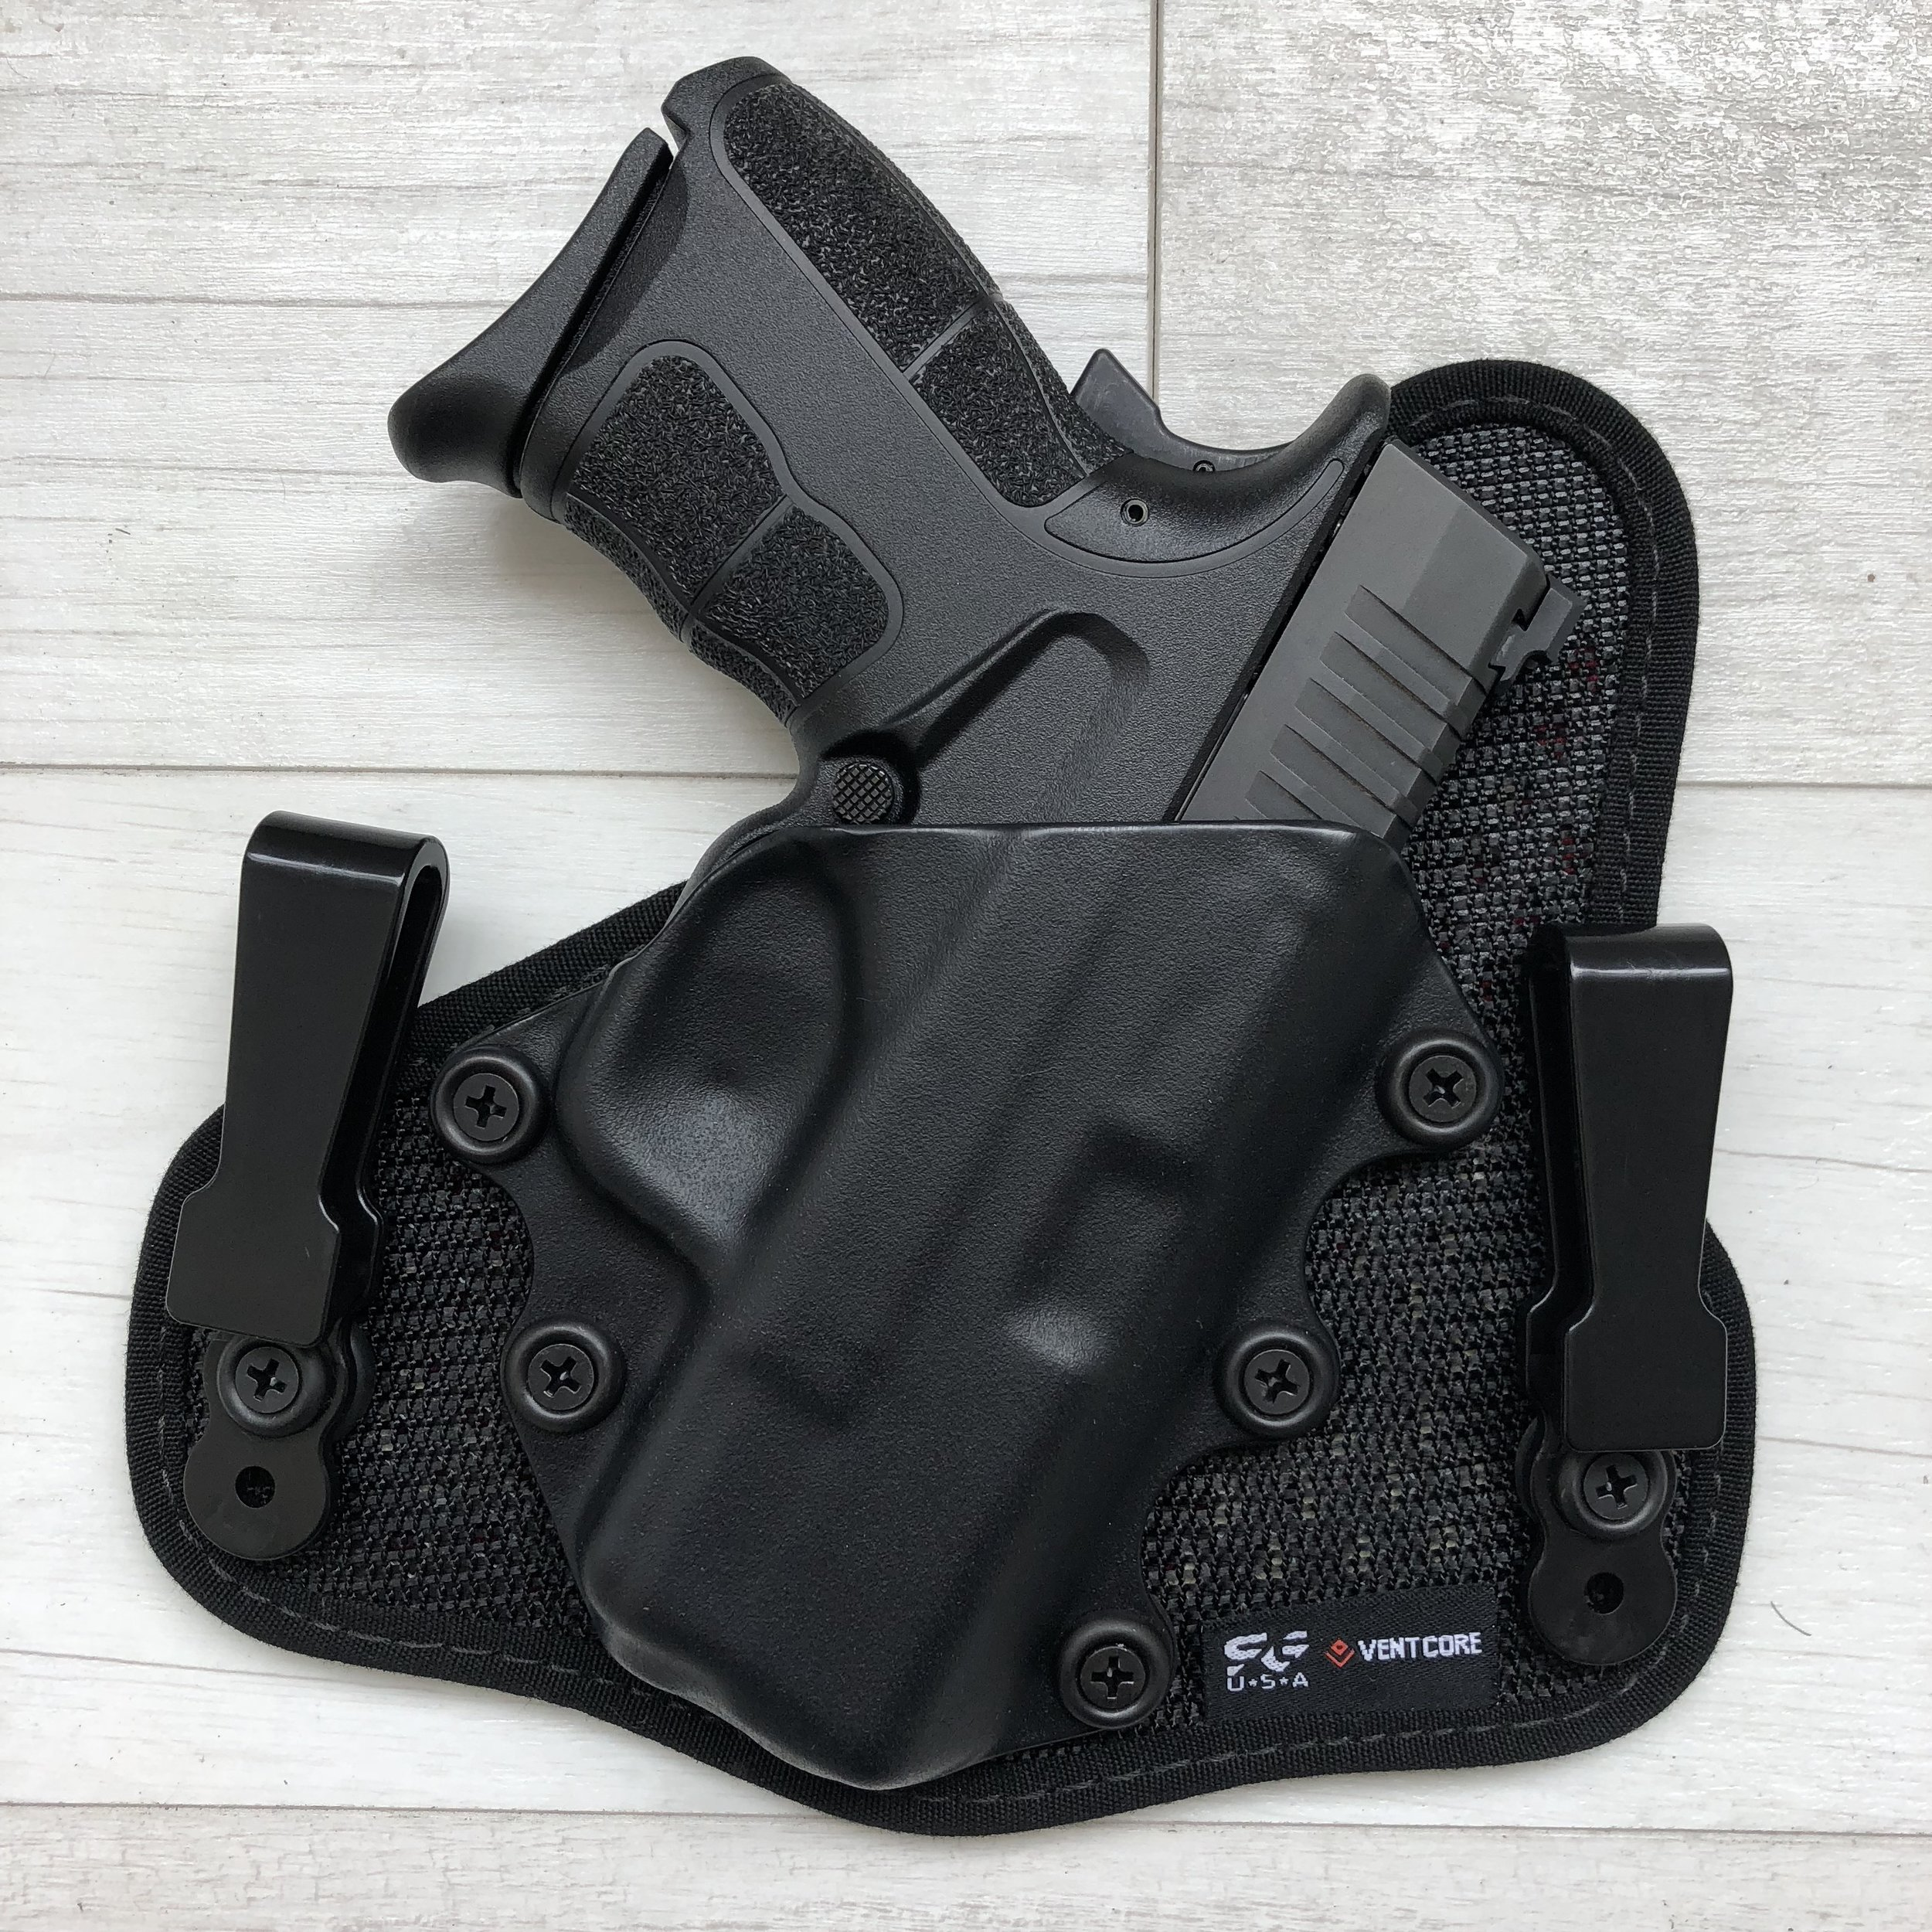 Mini Ventcore Holster from Stealth Gear USA, $99